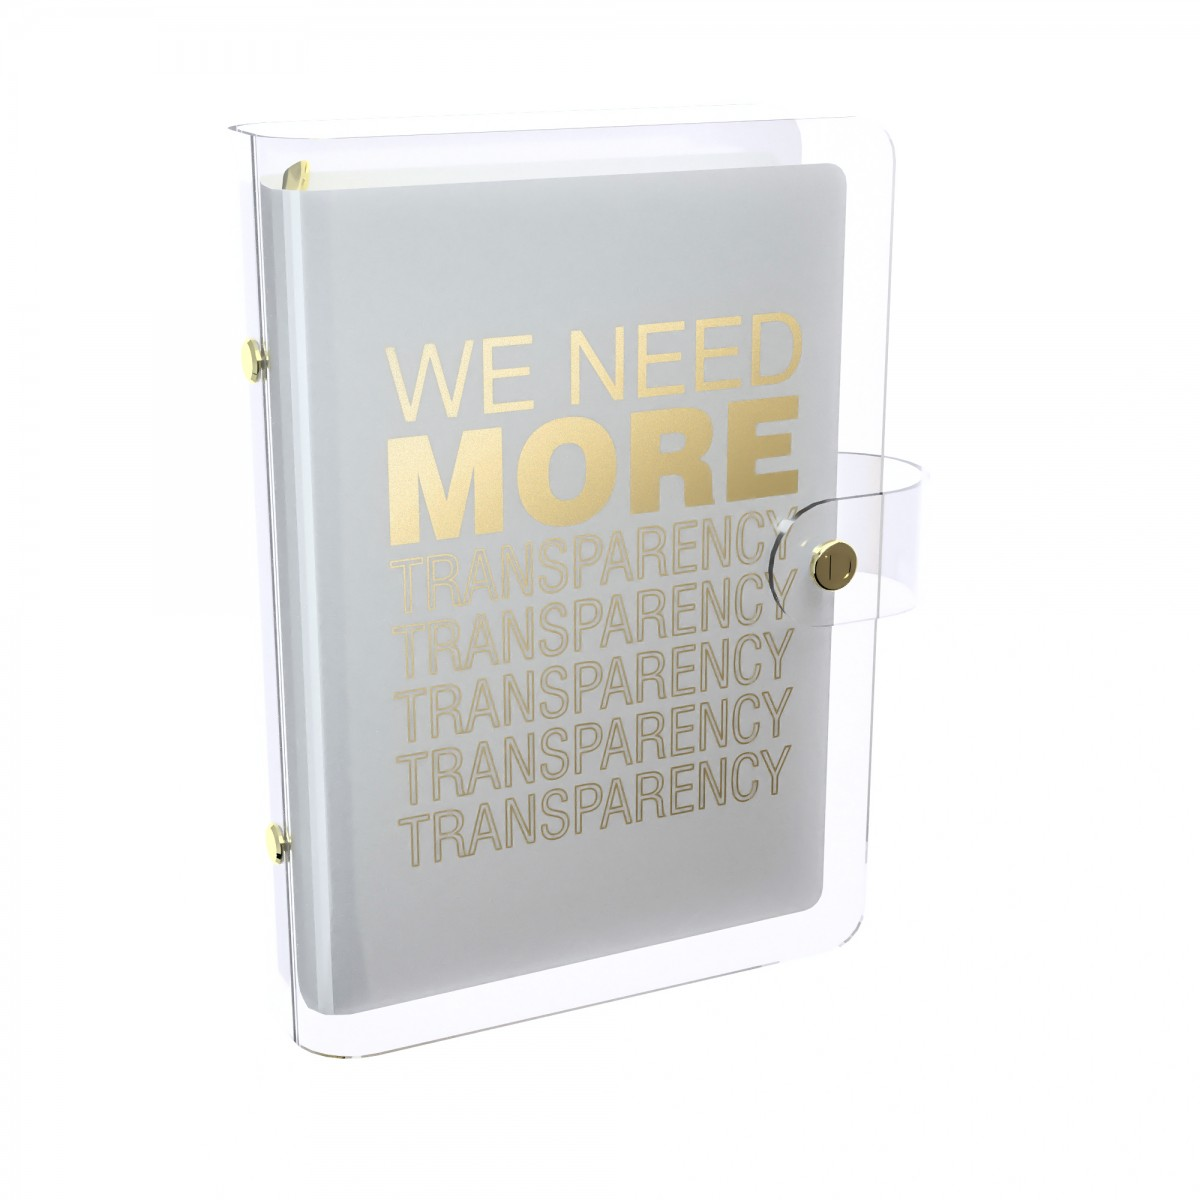 DISCAGENDA CLARITY CLEAR PVC PLANNER COVER - WE NEED MORE TRANSPARENCY (WHITE), RINGBOUND, PERSONAL SIZE